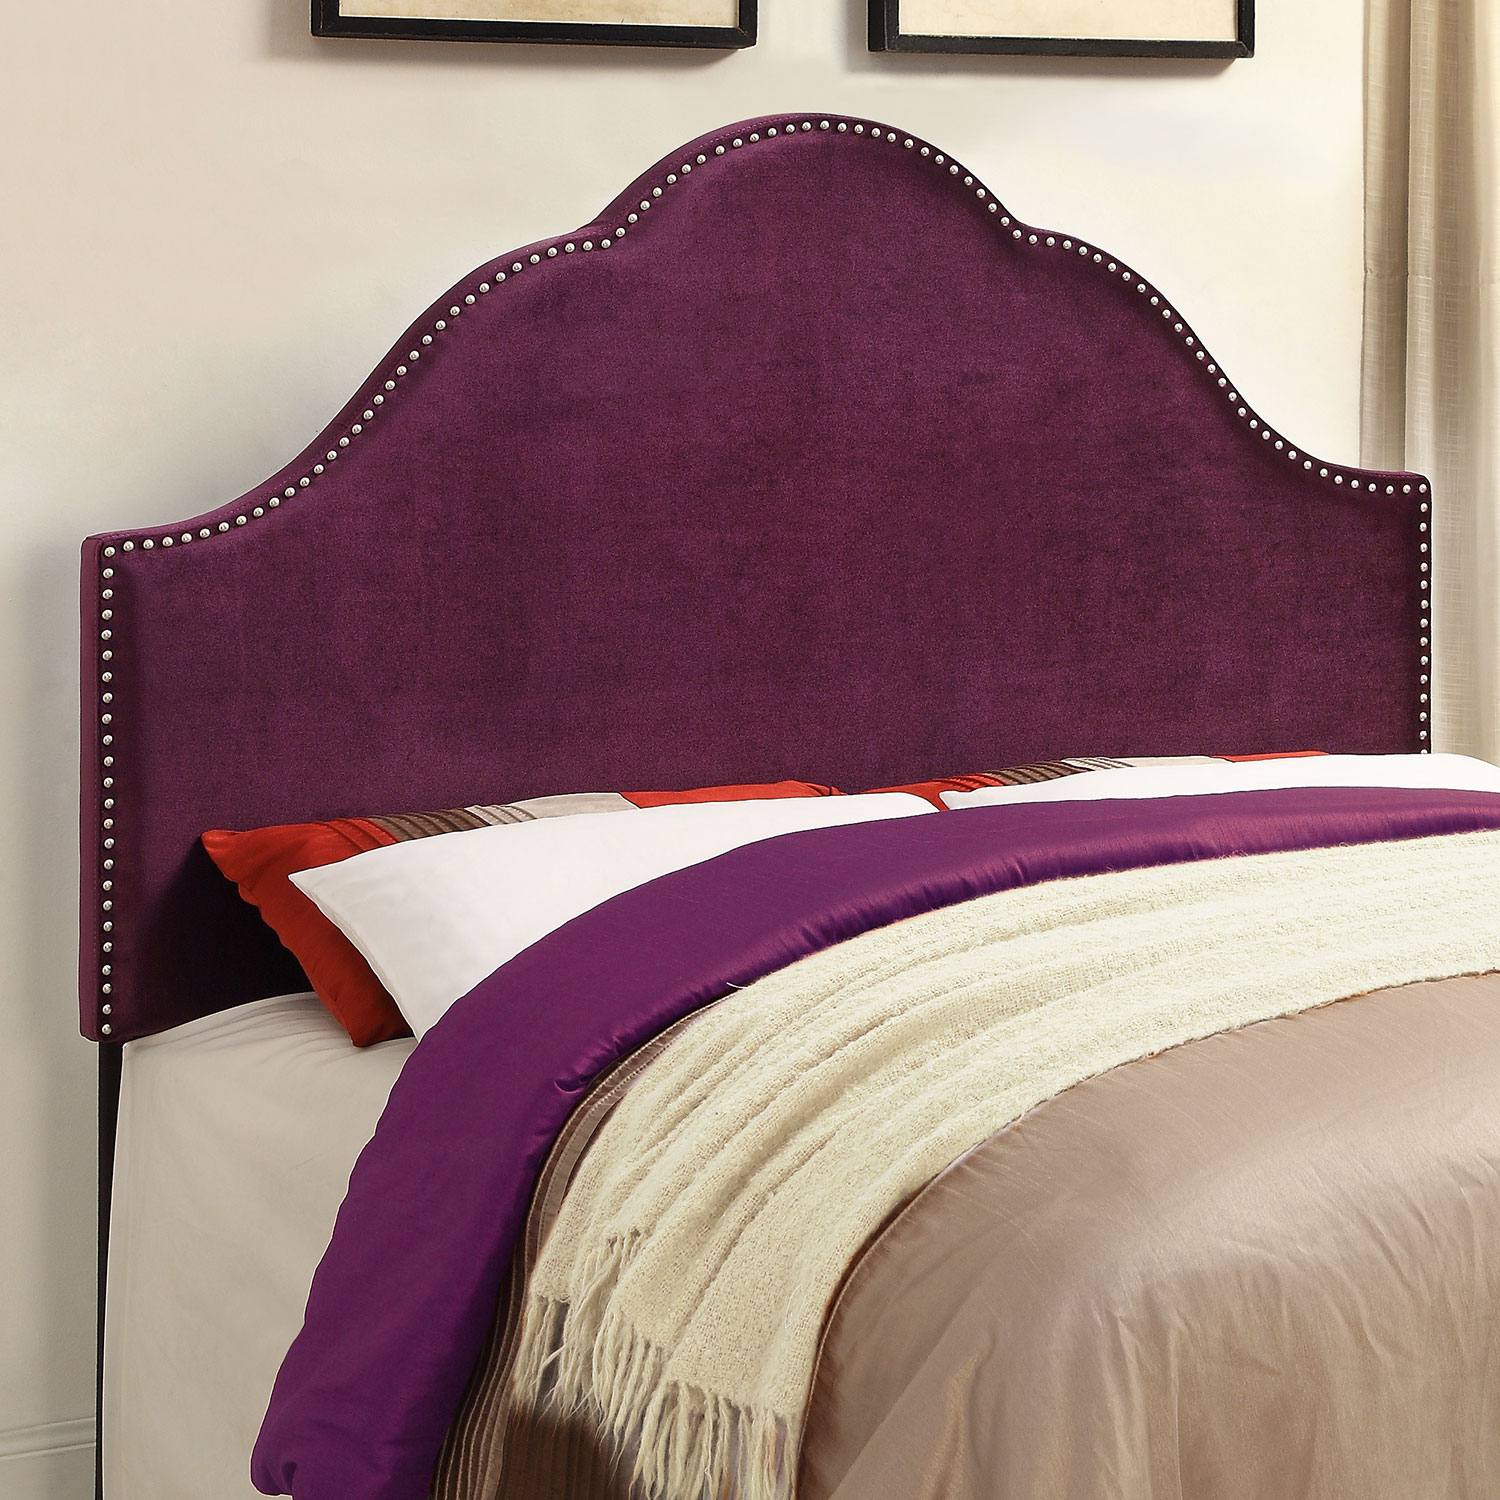 Bedroom Furniture - Delaney Queen Headboard - Plum